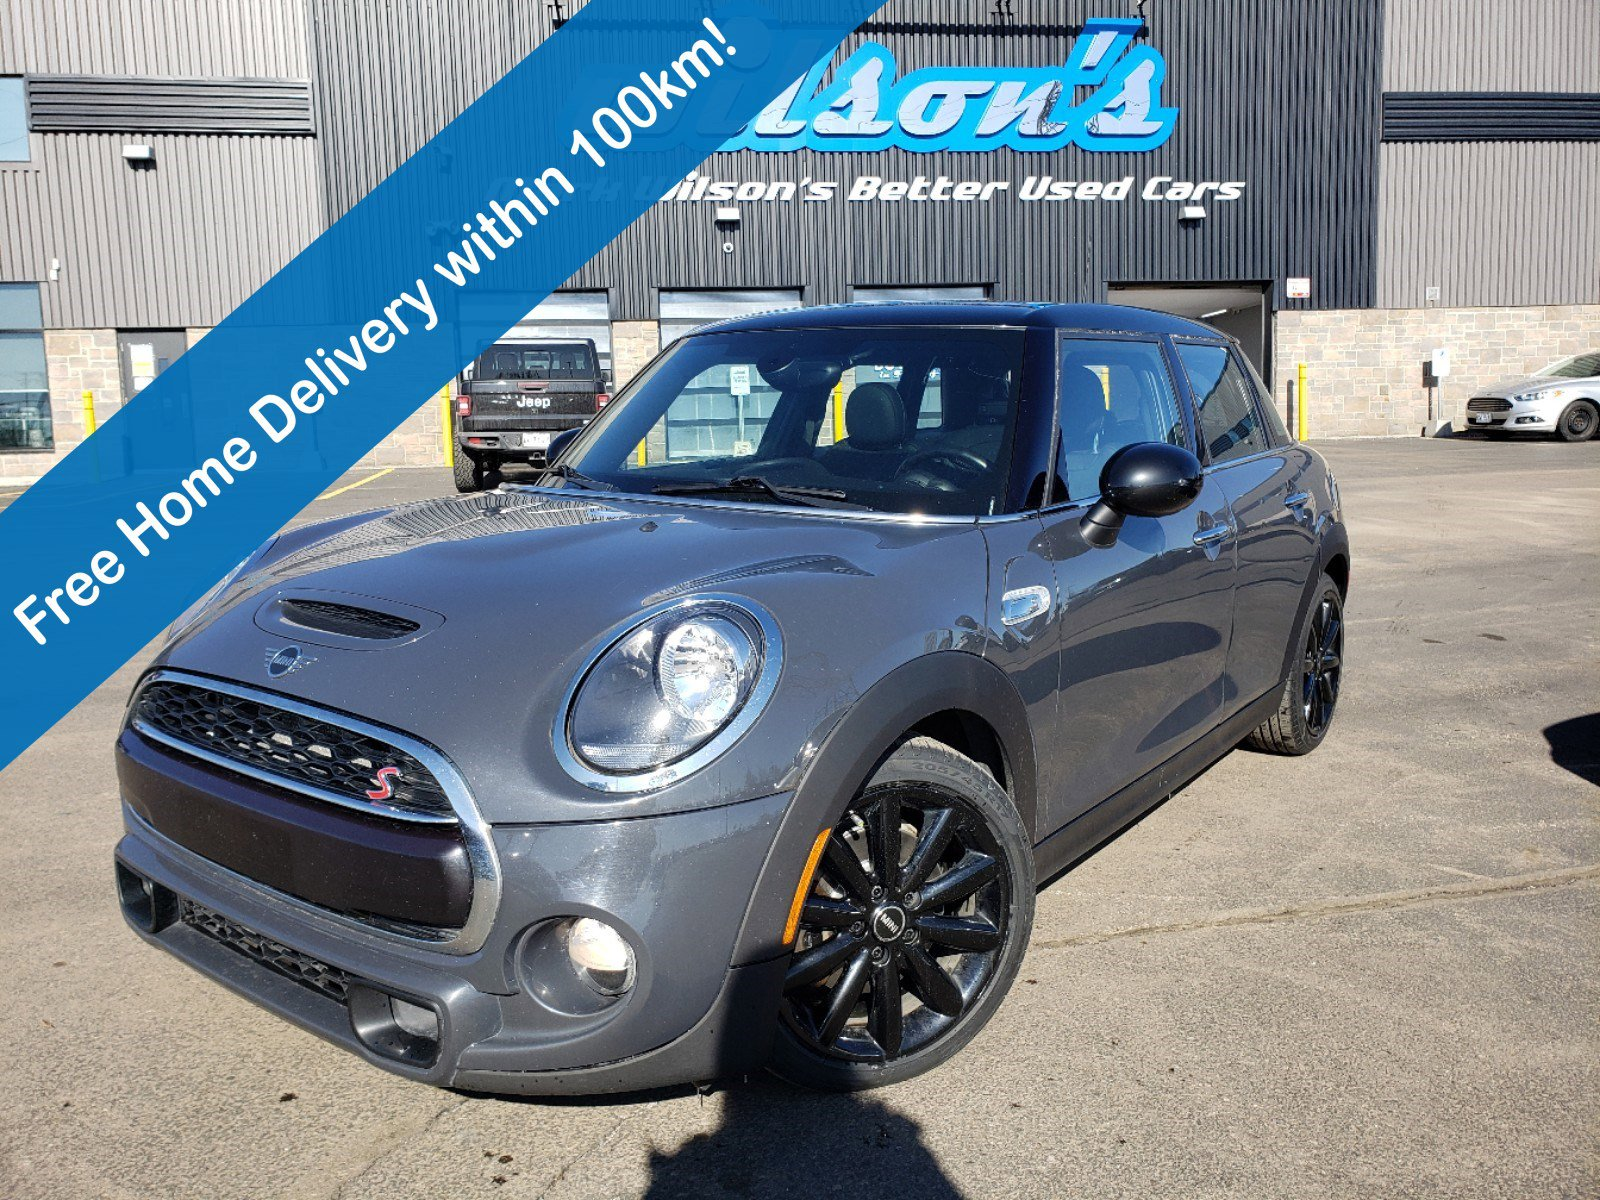 Certified Pre-Owned 2019 MINI 5 Door Cooper S, 6-Speed, Navigation, Sunroof, Leather, Rear Camera, Park Sensors, Alloy Wheels & More!